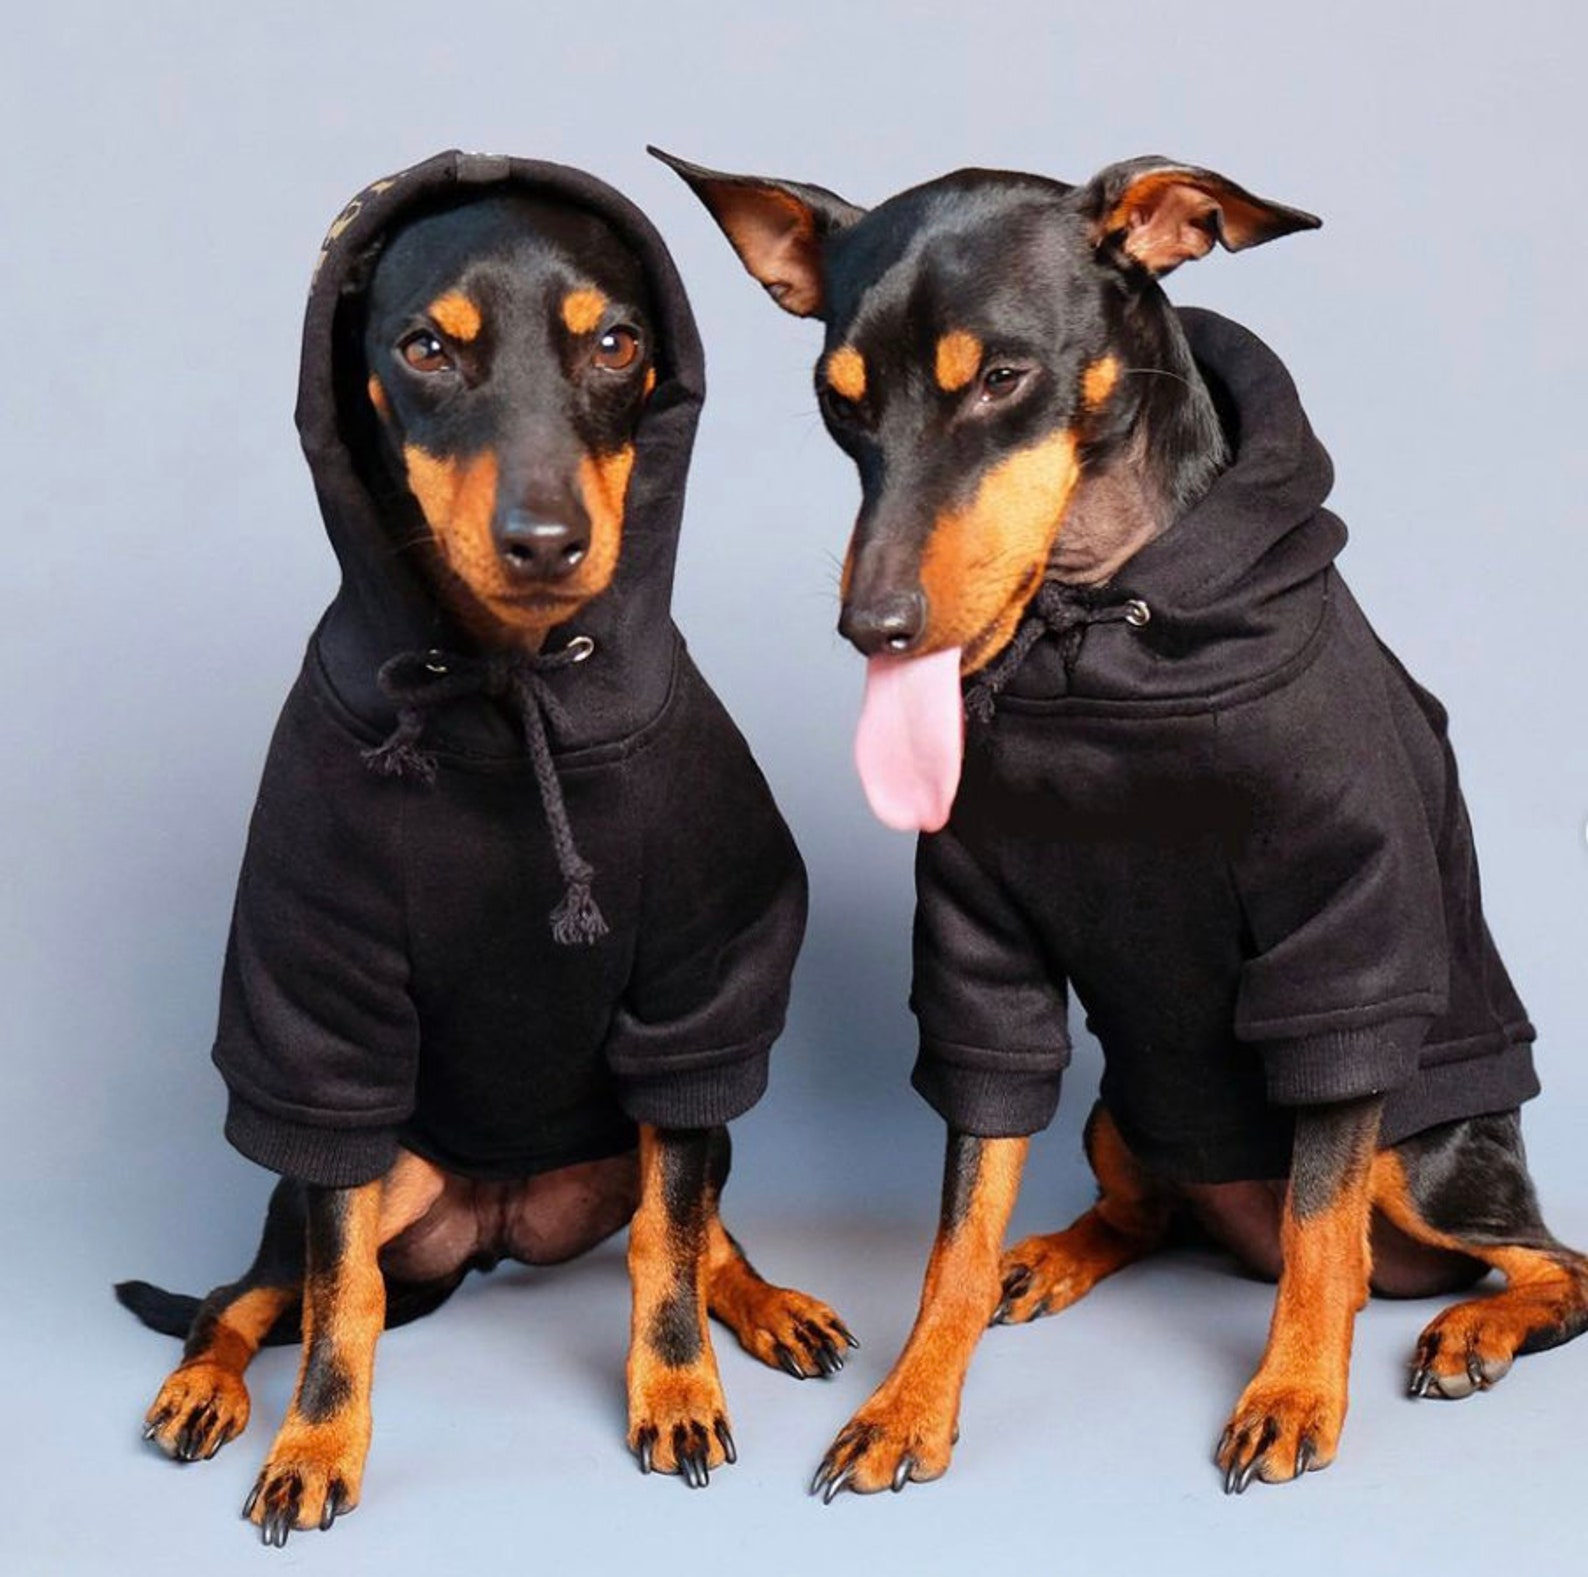 Two dogs wearing a black hoodie